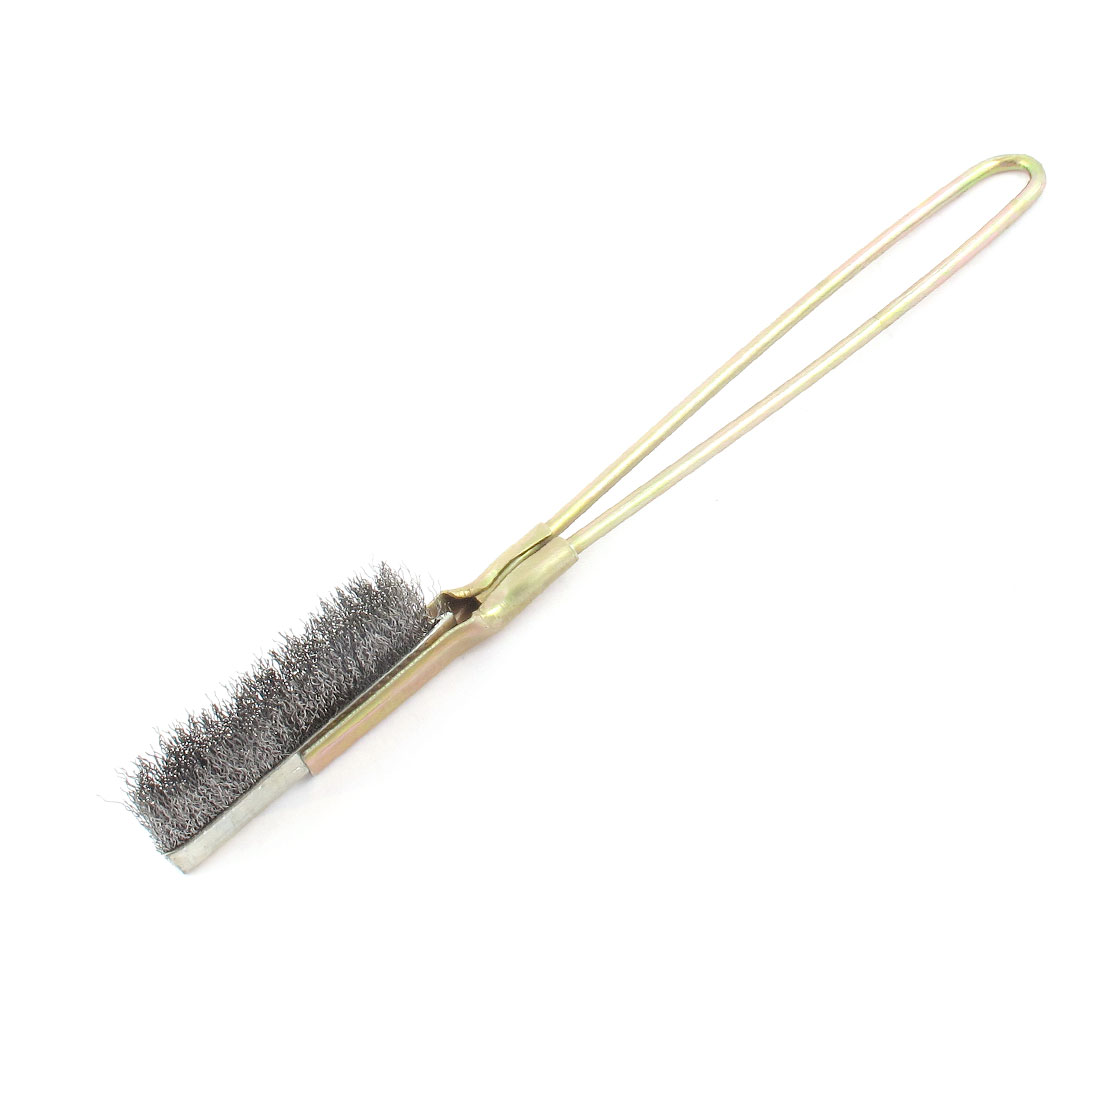 Bronze Tone Handle Handhold Rust Stain Cleaning Steel Wire Brush